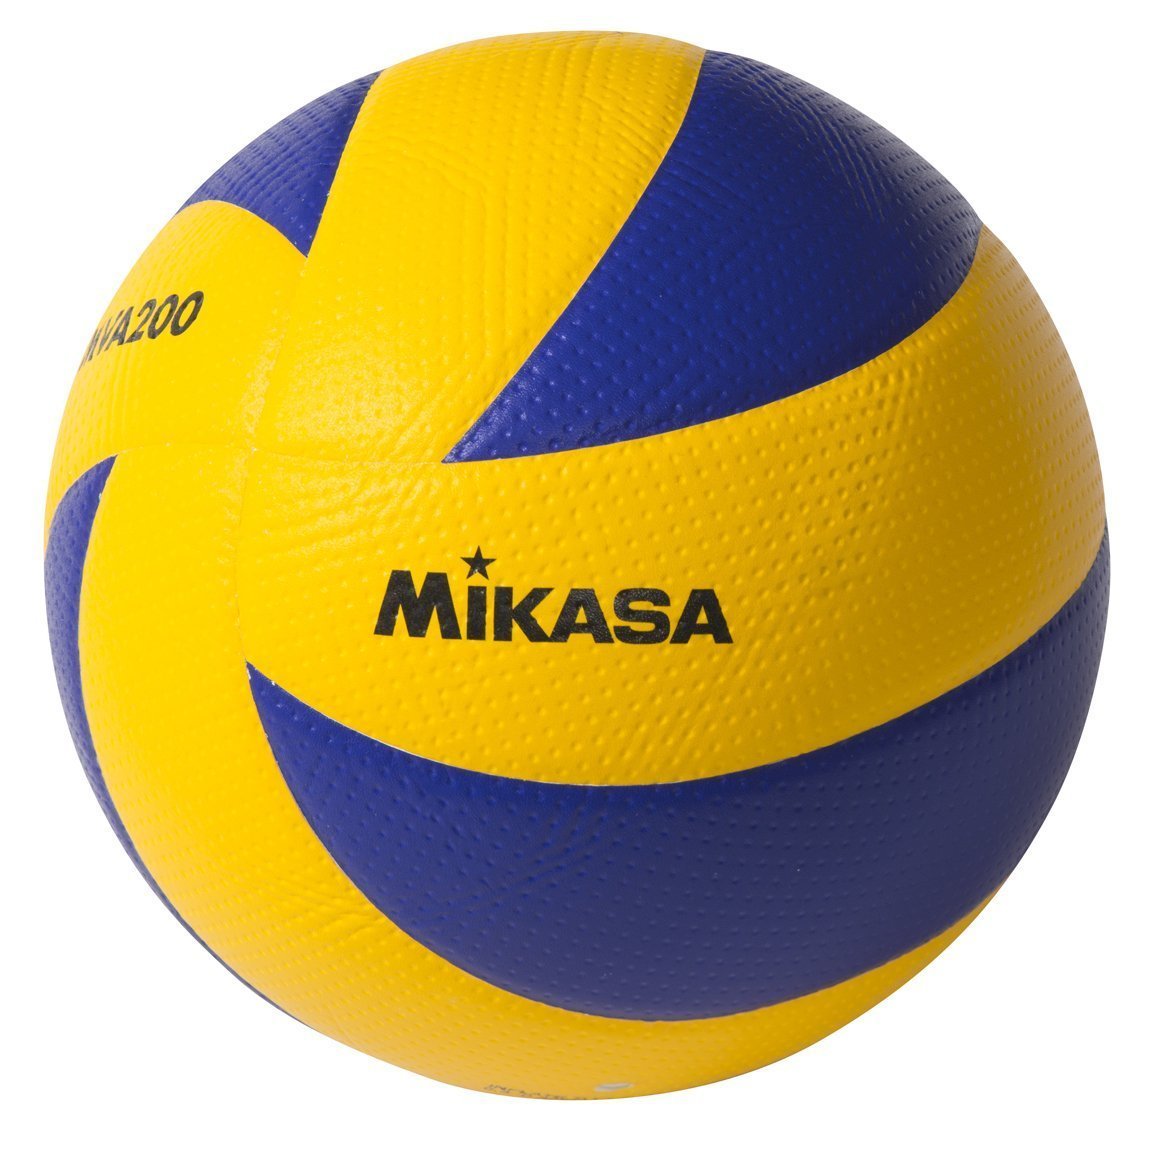 Mikasa Sports Official FIVB Game Ball